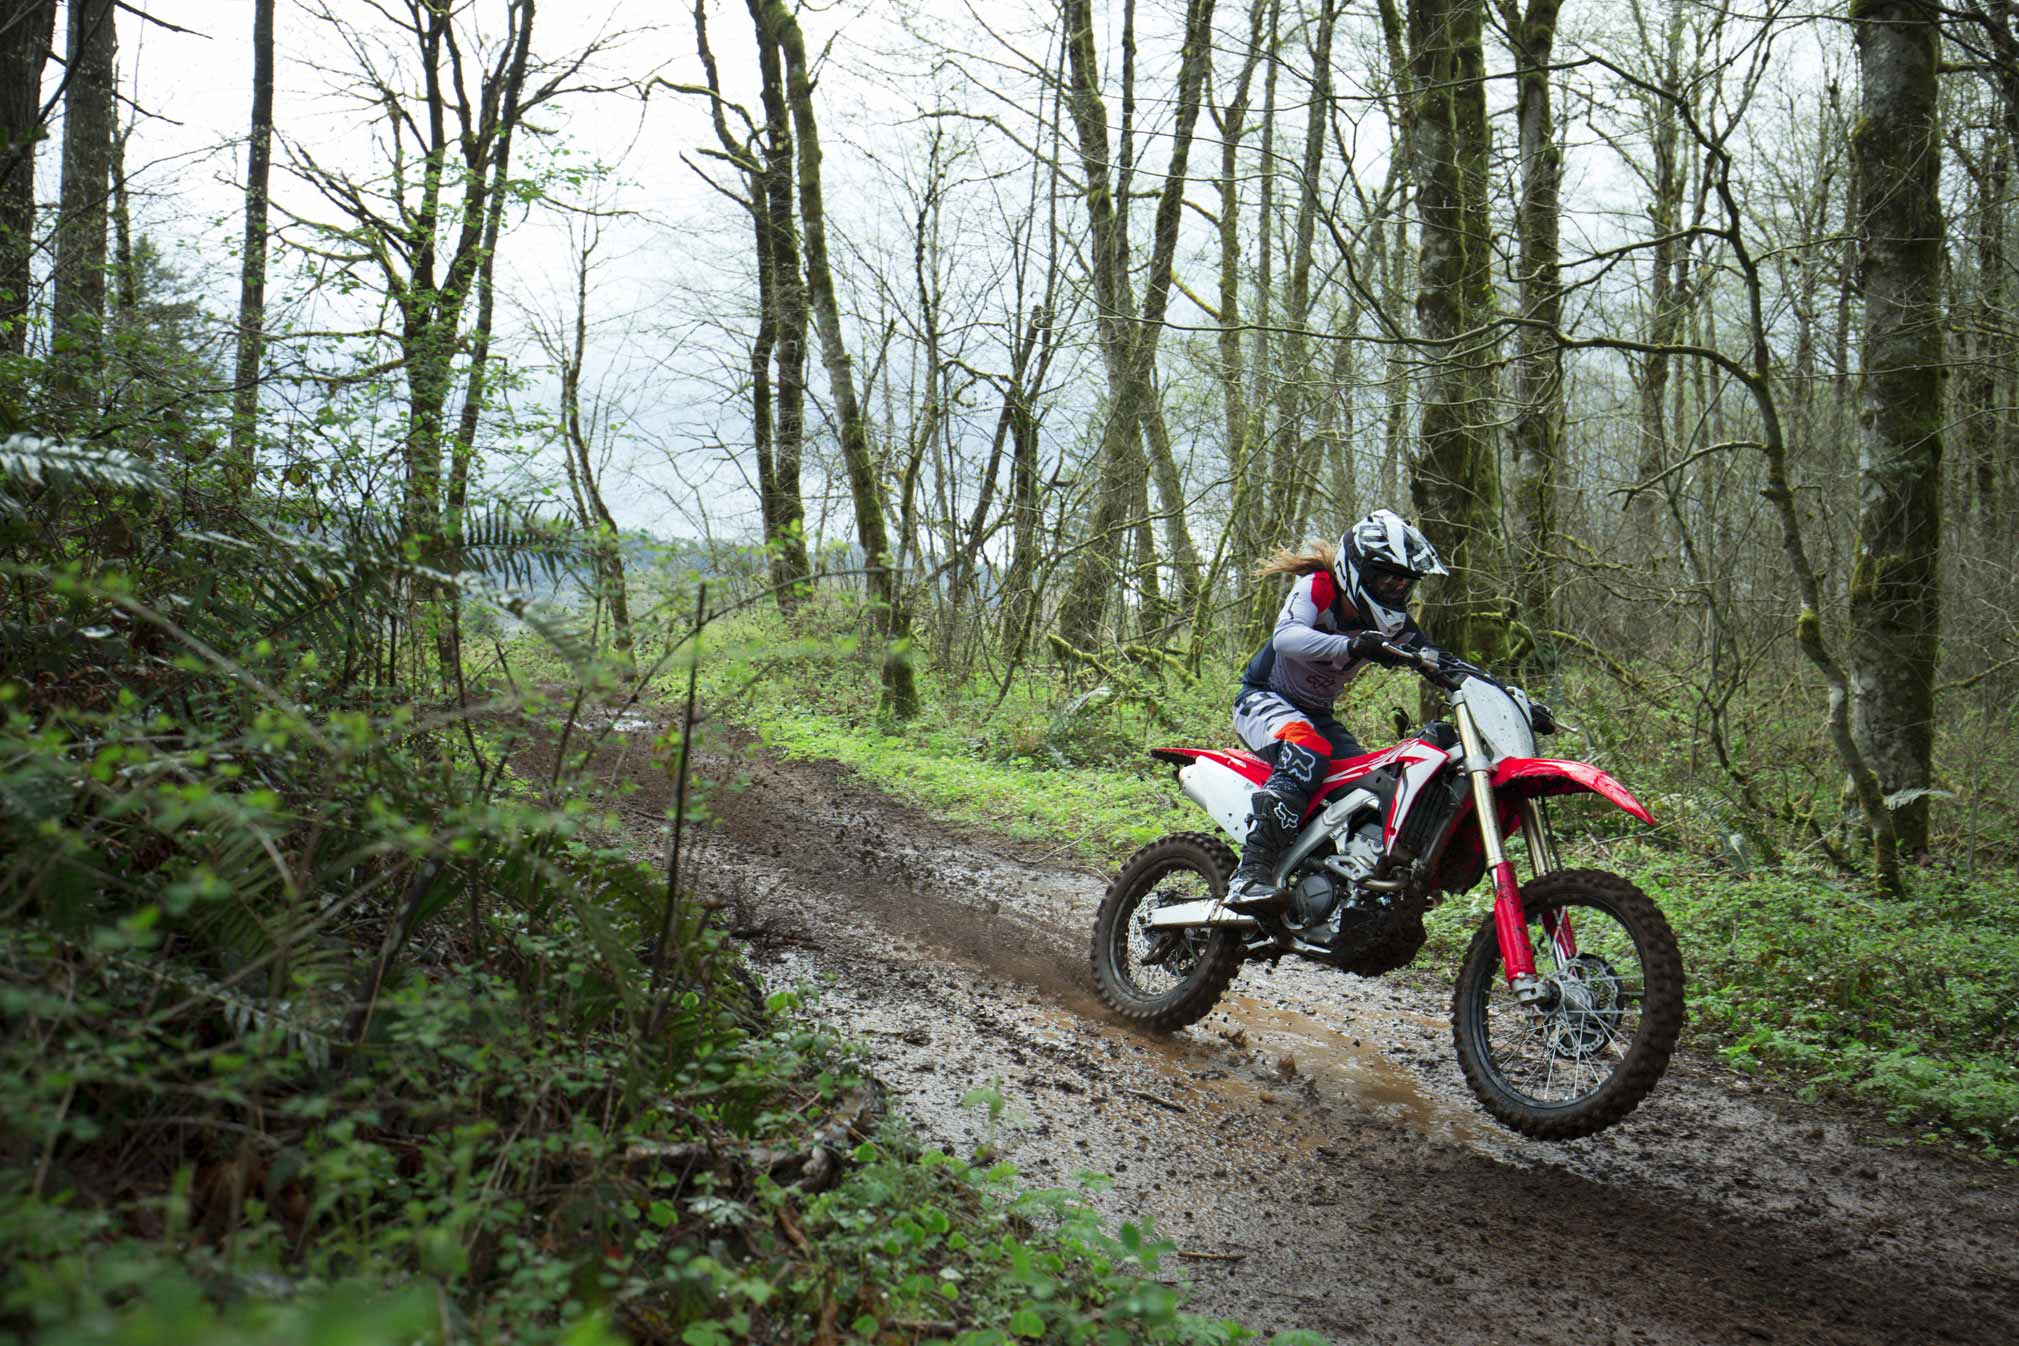 2019 Honda CRF250RX Guide • Total Motorcycle